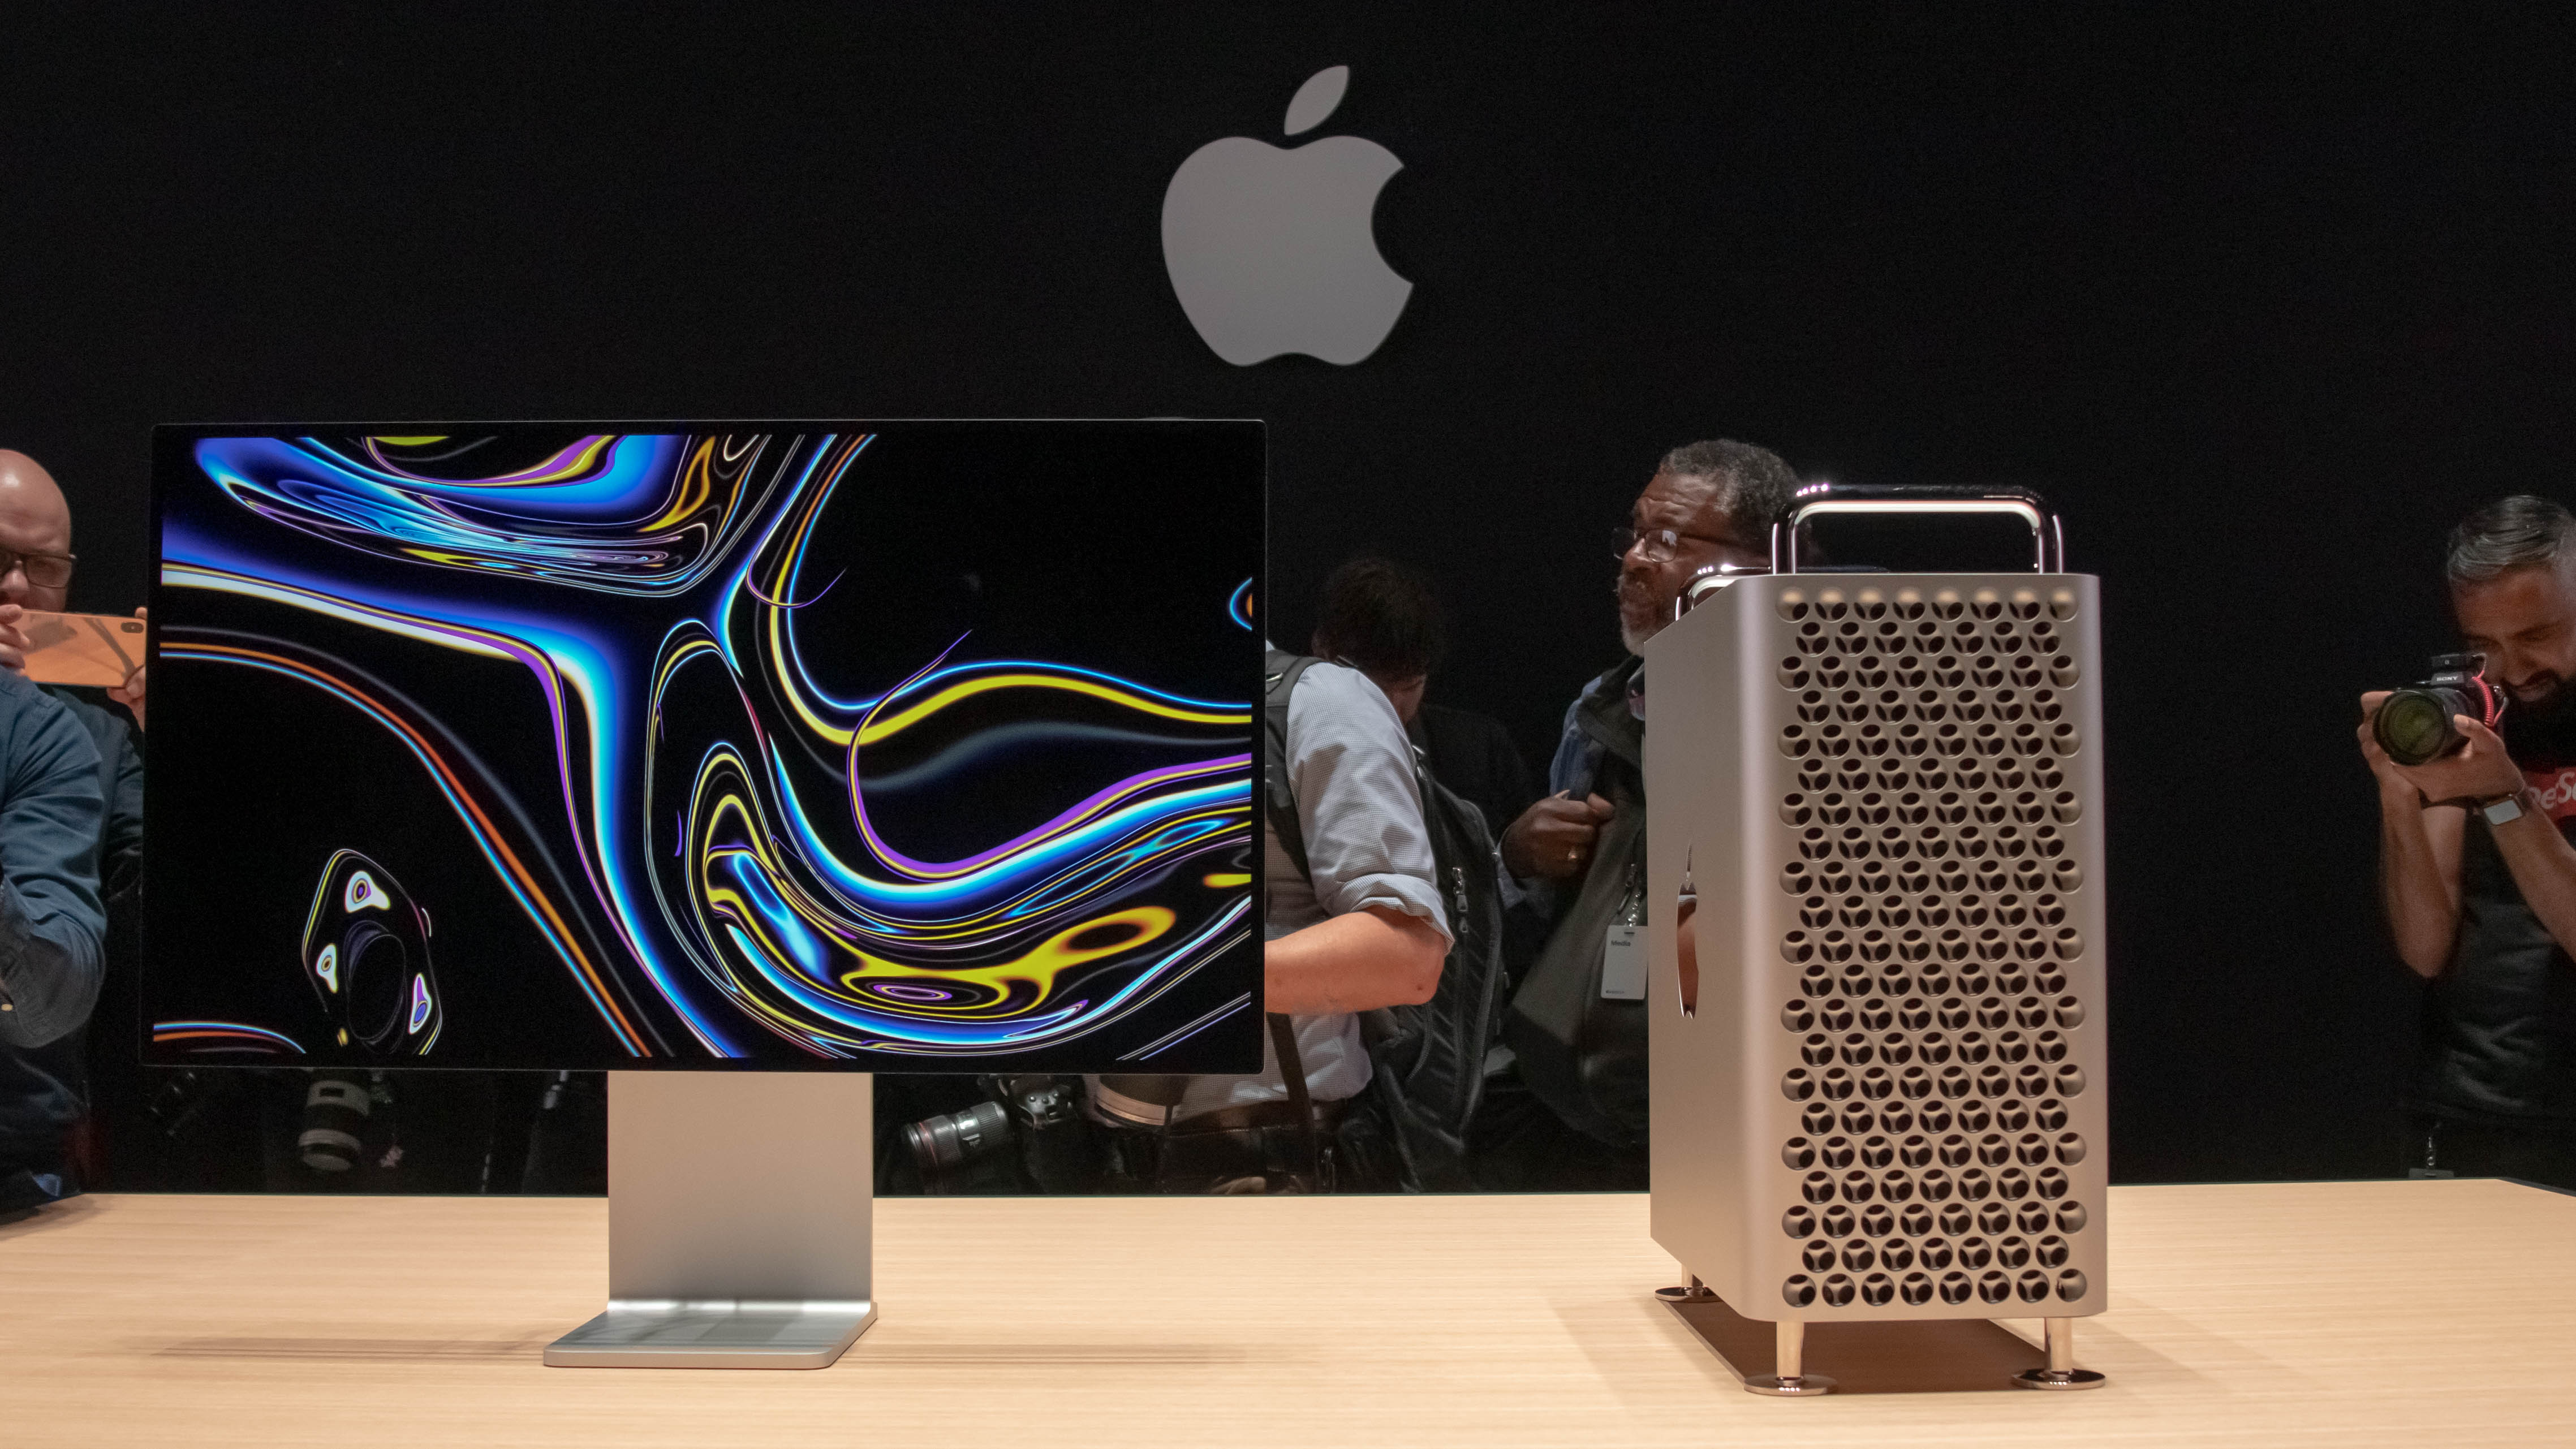 Mac Pro 2019: release date, price and specs